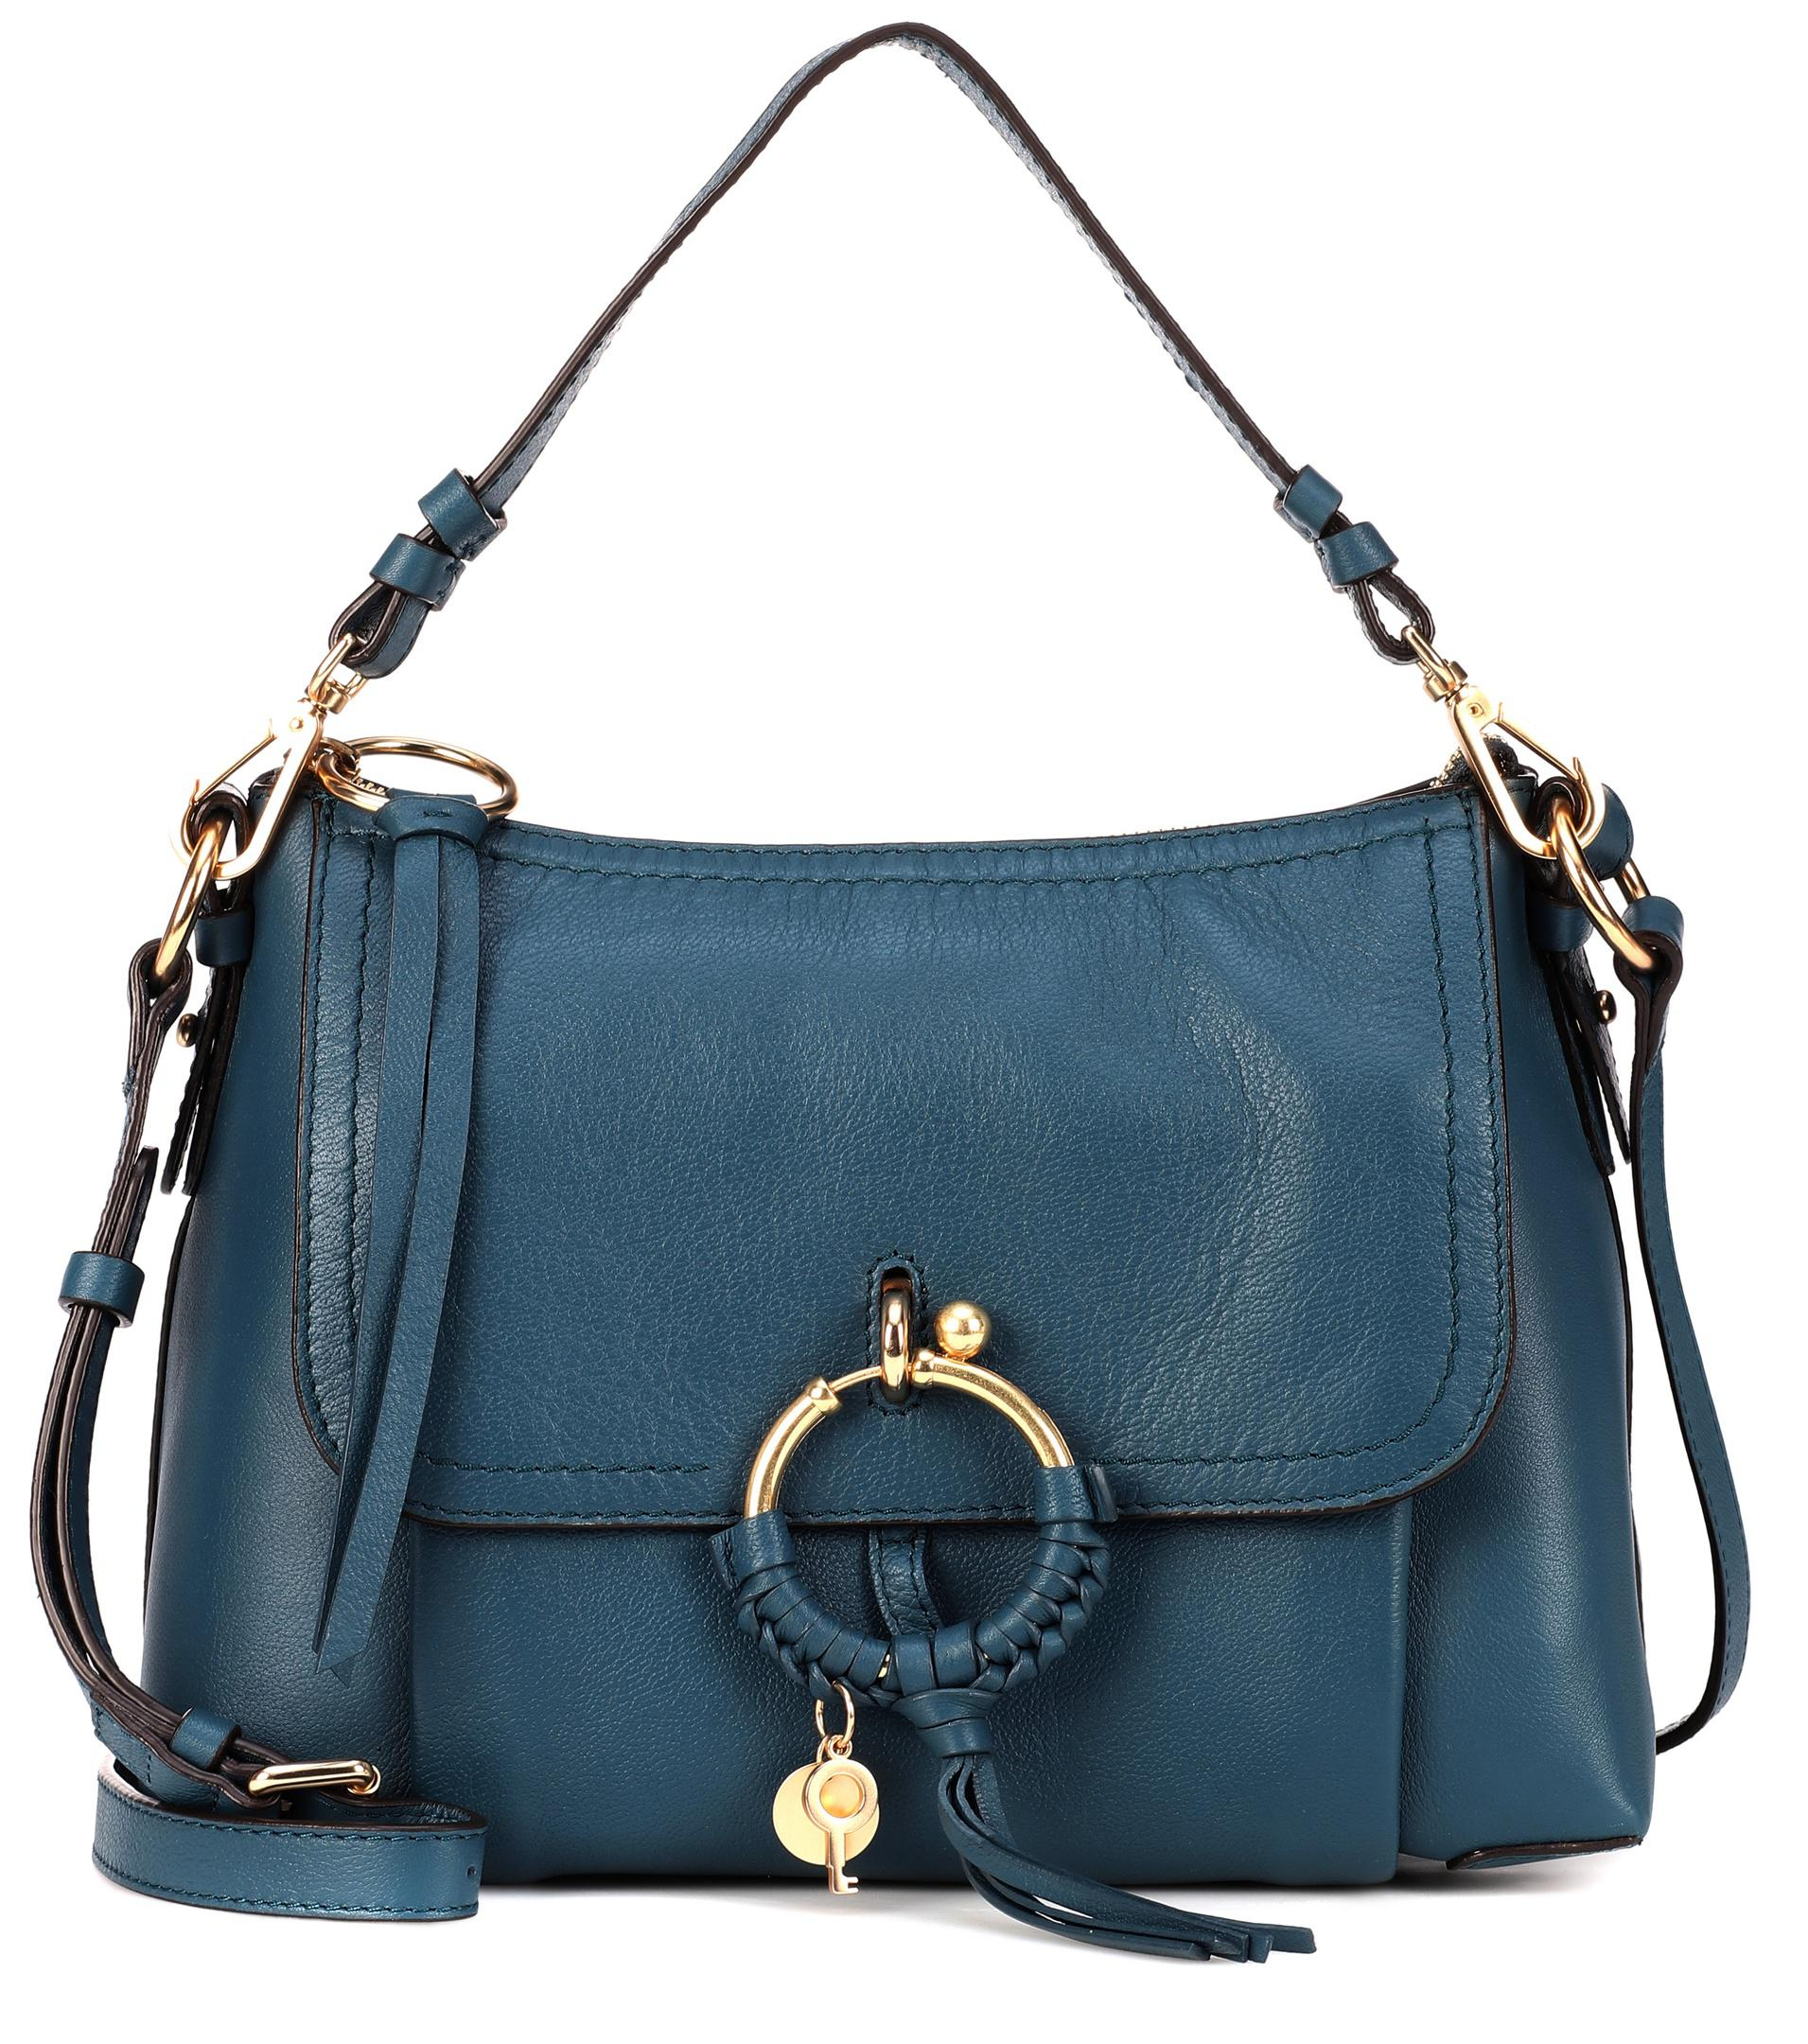 Lyst - See By Chloé Small Joan Leather Crossbody Bag in Blue 12144b77ad0a6